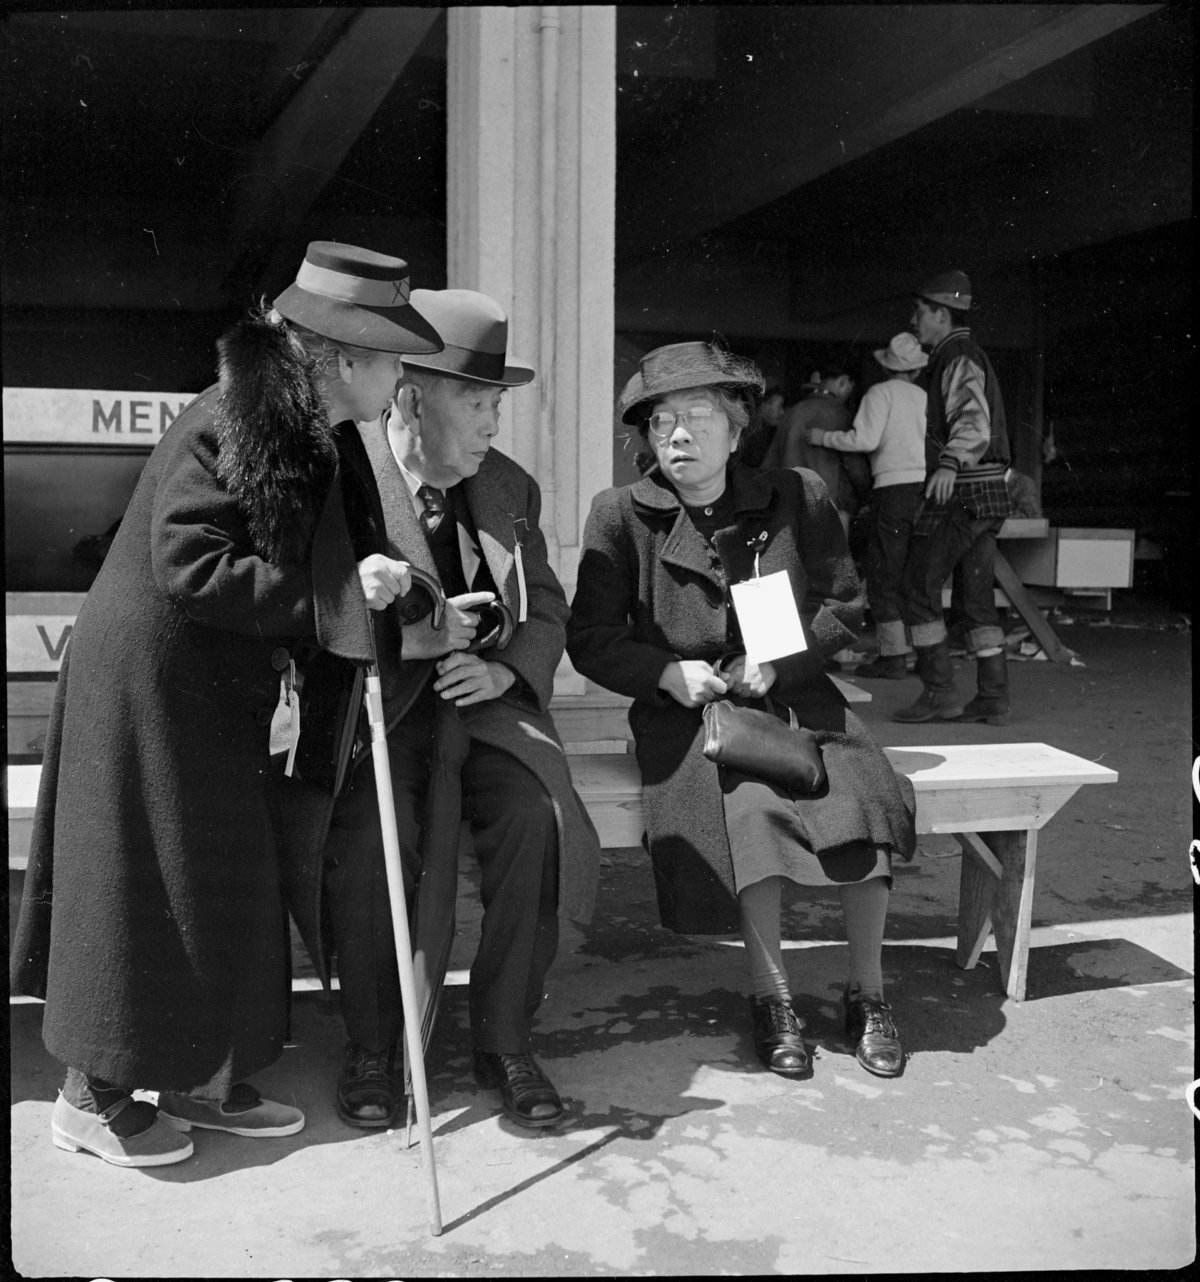 San Bruno, Caliofnira. These older evacuees of Japanese ancestry have just been registered and are resting before being assigned to their living quarters in the barracks. The large tag worn by the woman on the right indicates special consideration for aged or infirm.